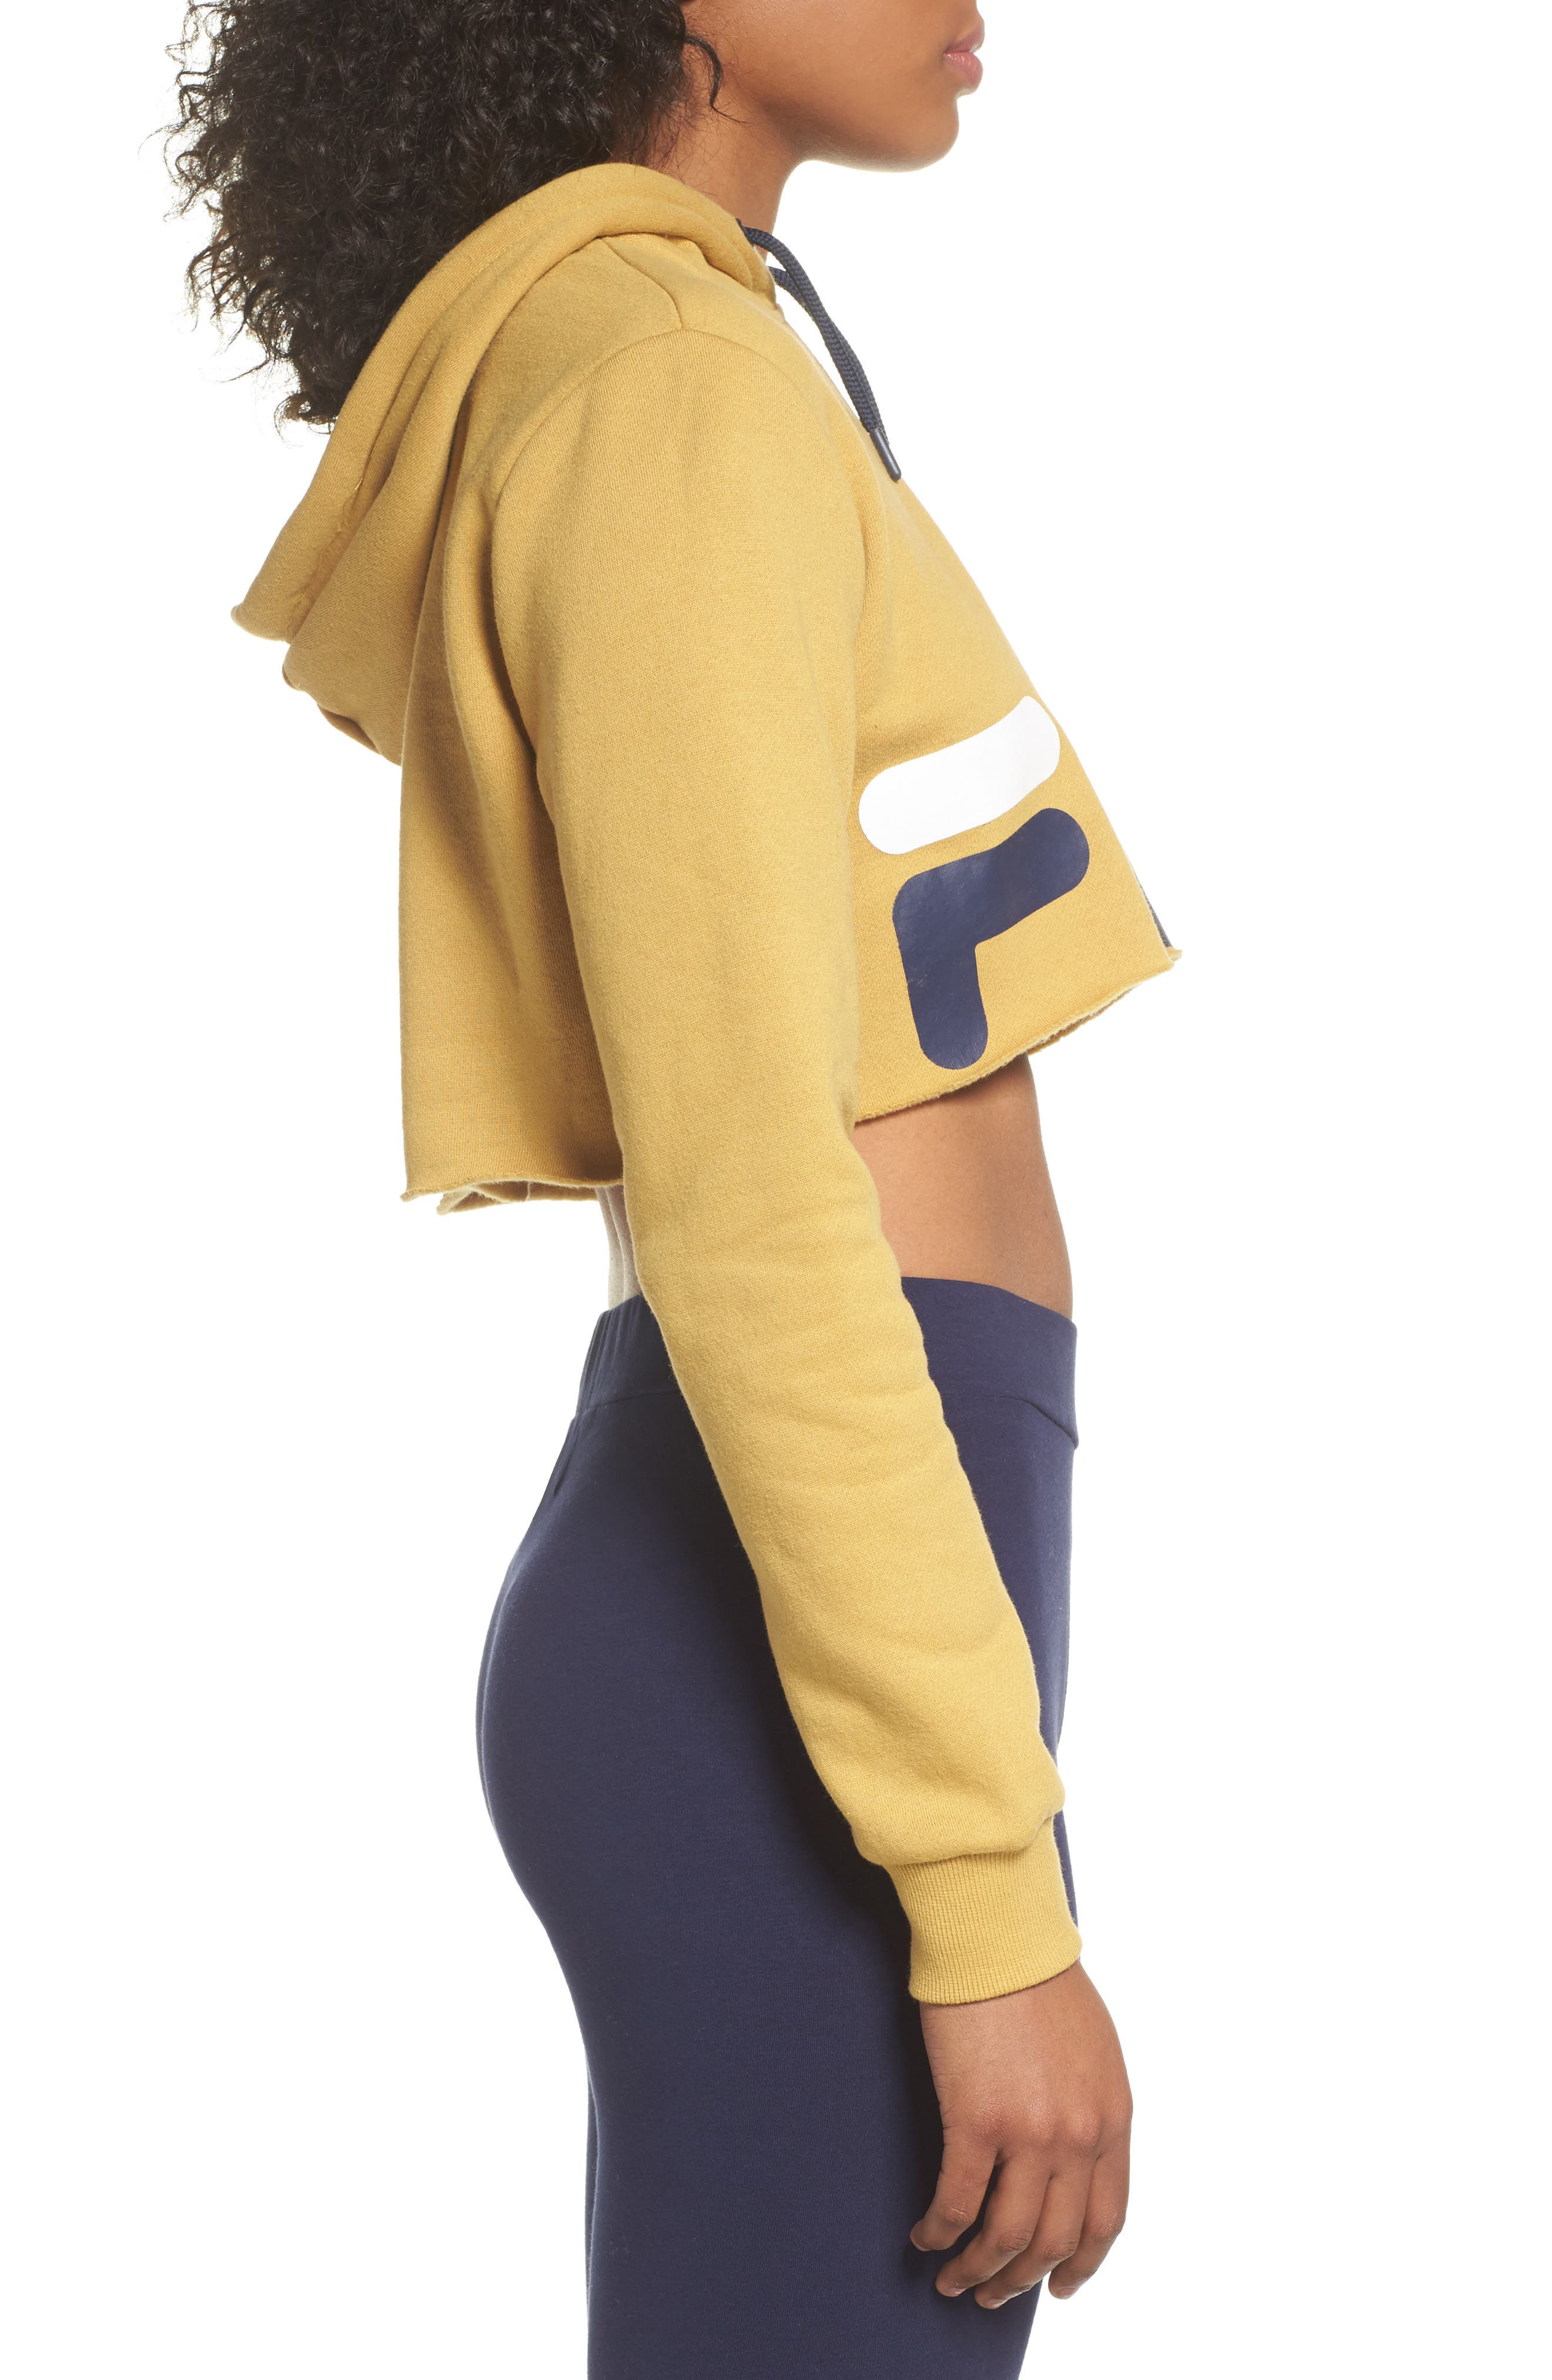 Pam Crop Hoodie,                             Alternate thumbnail 3, color,                             Mustard Gold/ Navy/ White